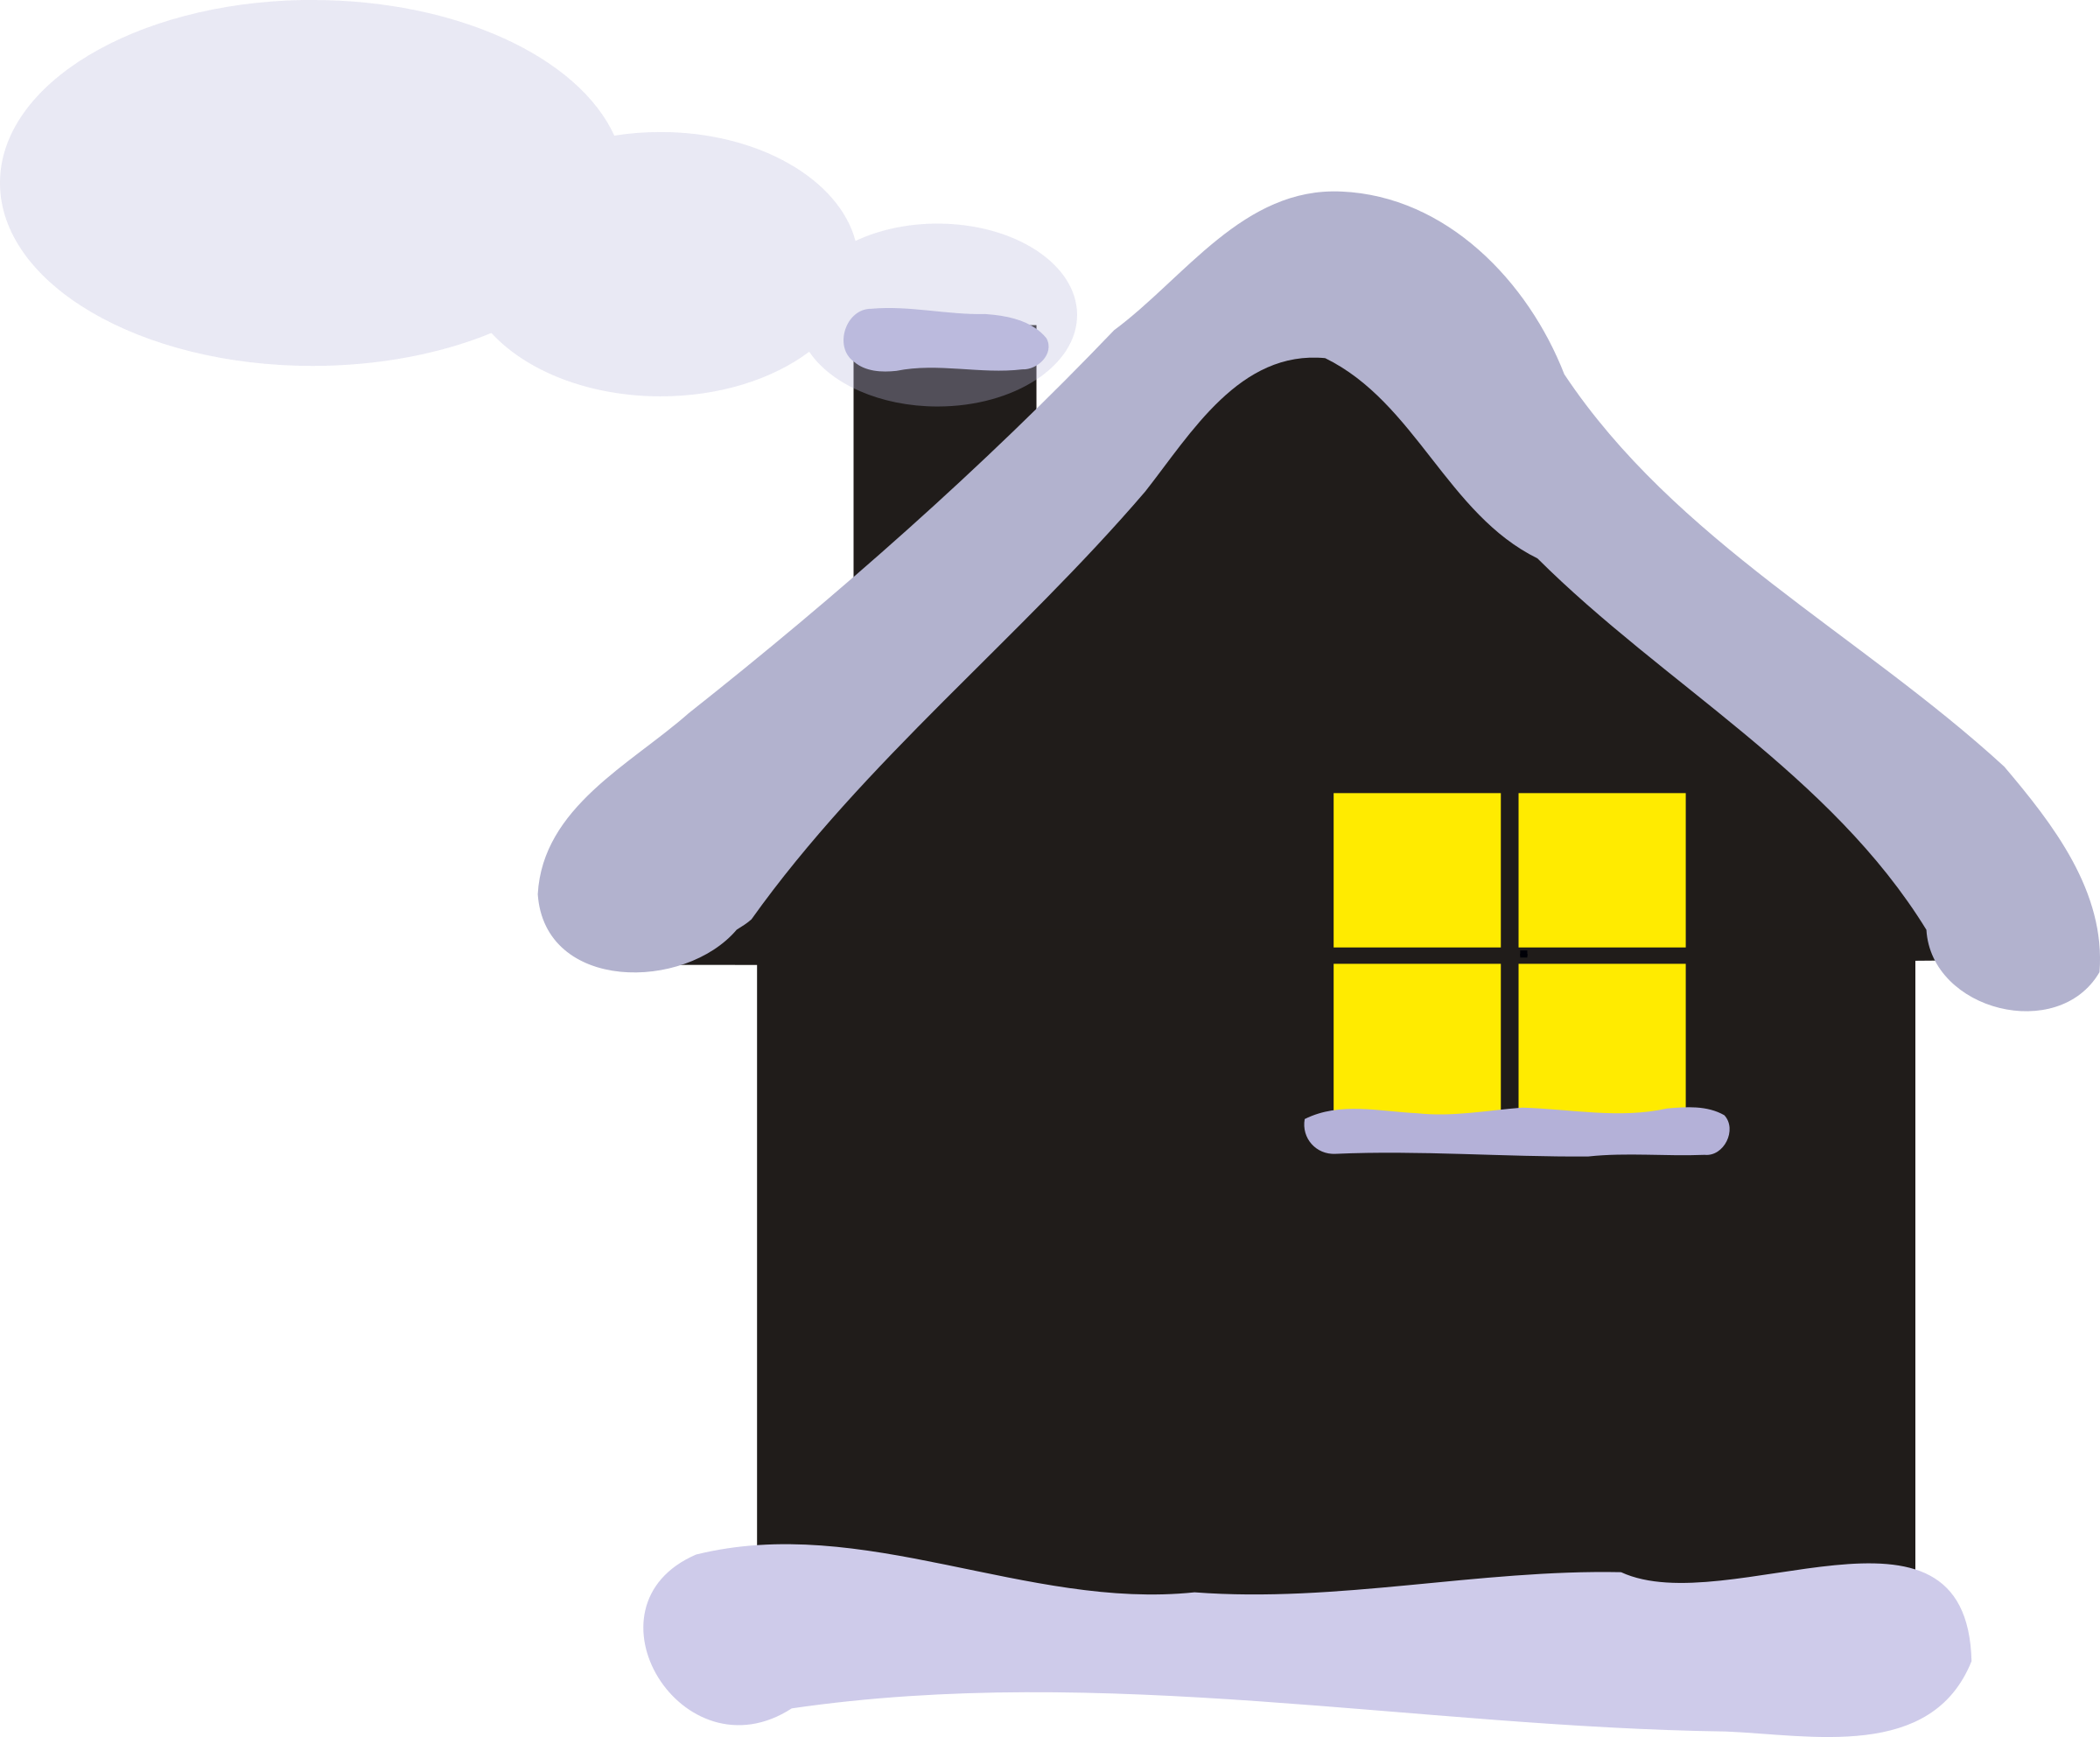 Cottage icons png free. Winter clipart icon